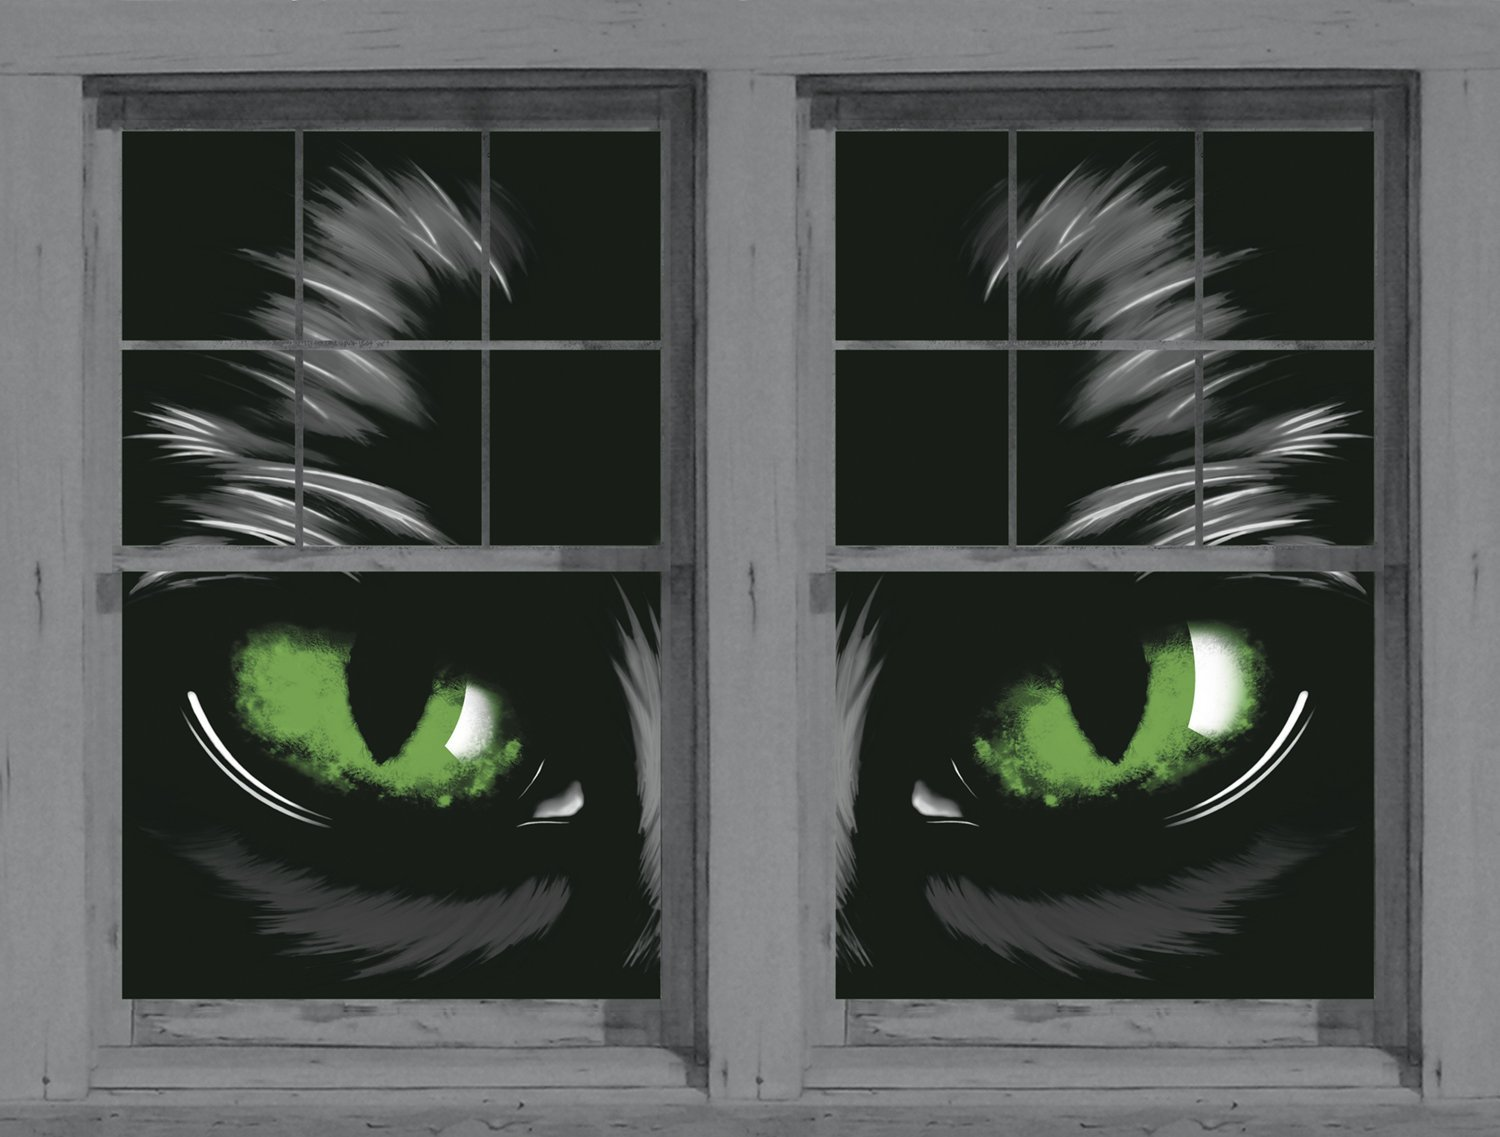 glowing cat eyes window covers for Halloween decorating from Amazom.com